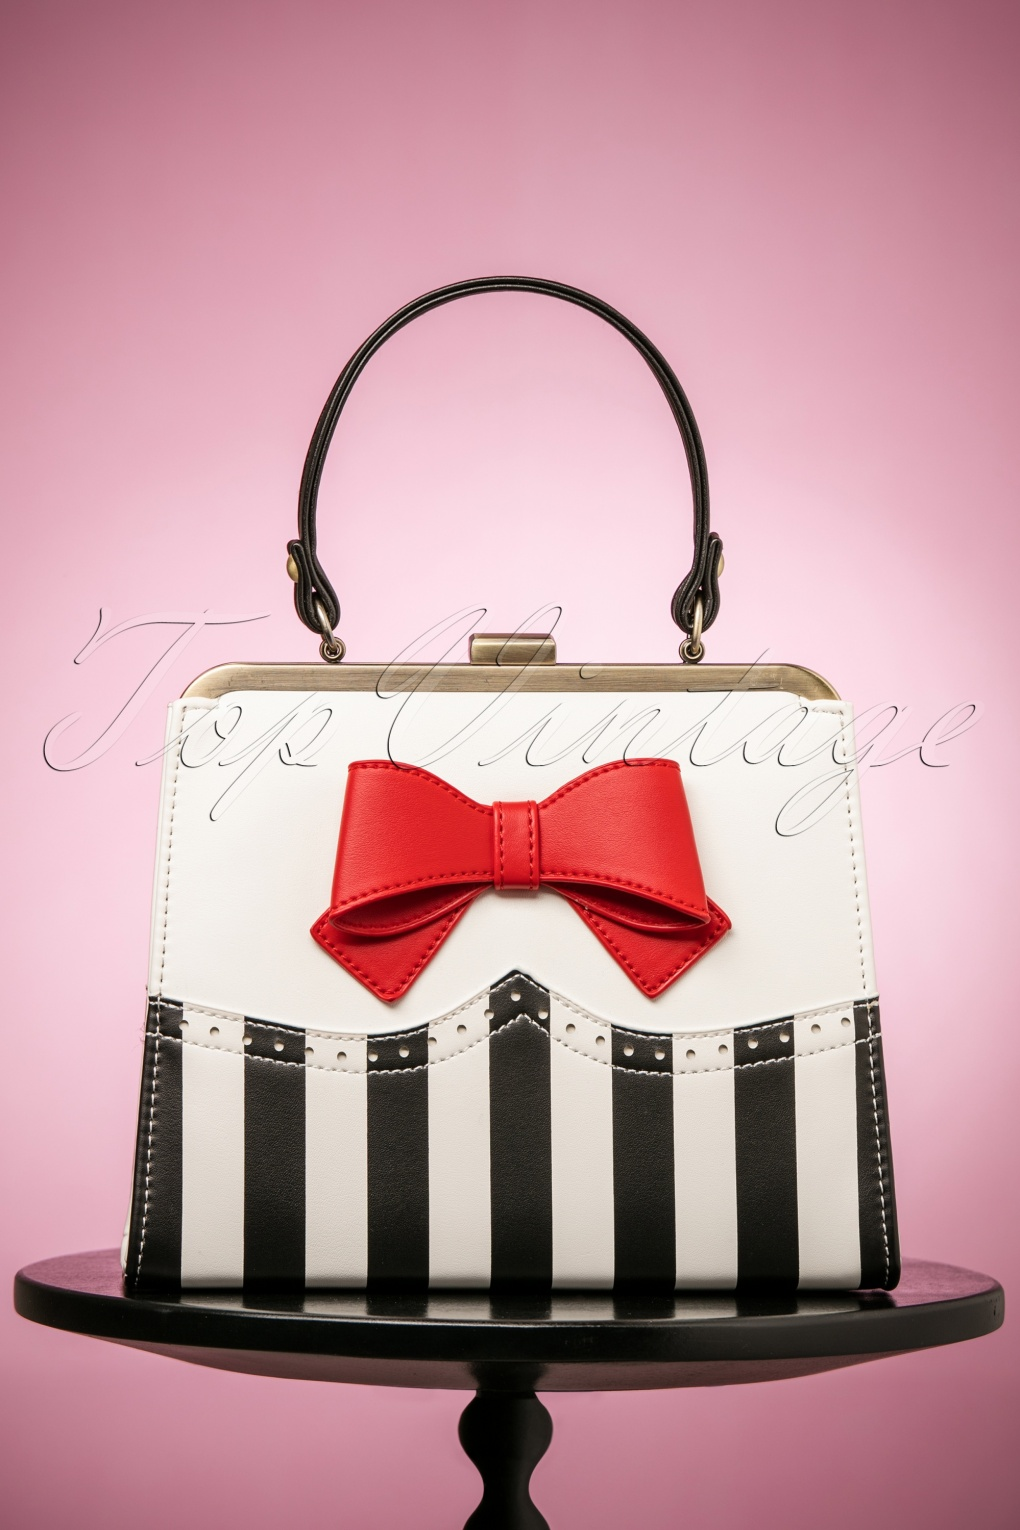 Vintage & Retro Handbags, Purses, Wallets, Bags 50s Inez Sweetheart Handbag in Black and White £60.68 AT vintagedancer.com